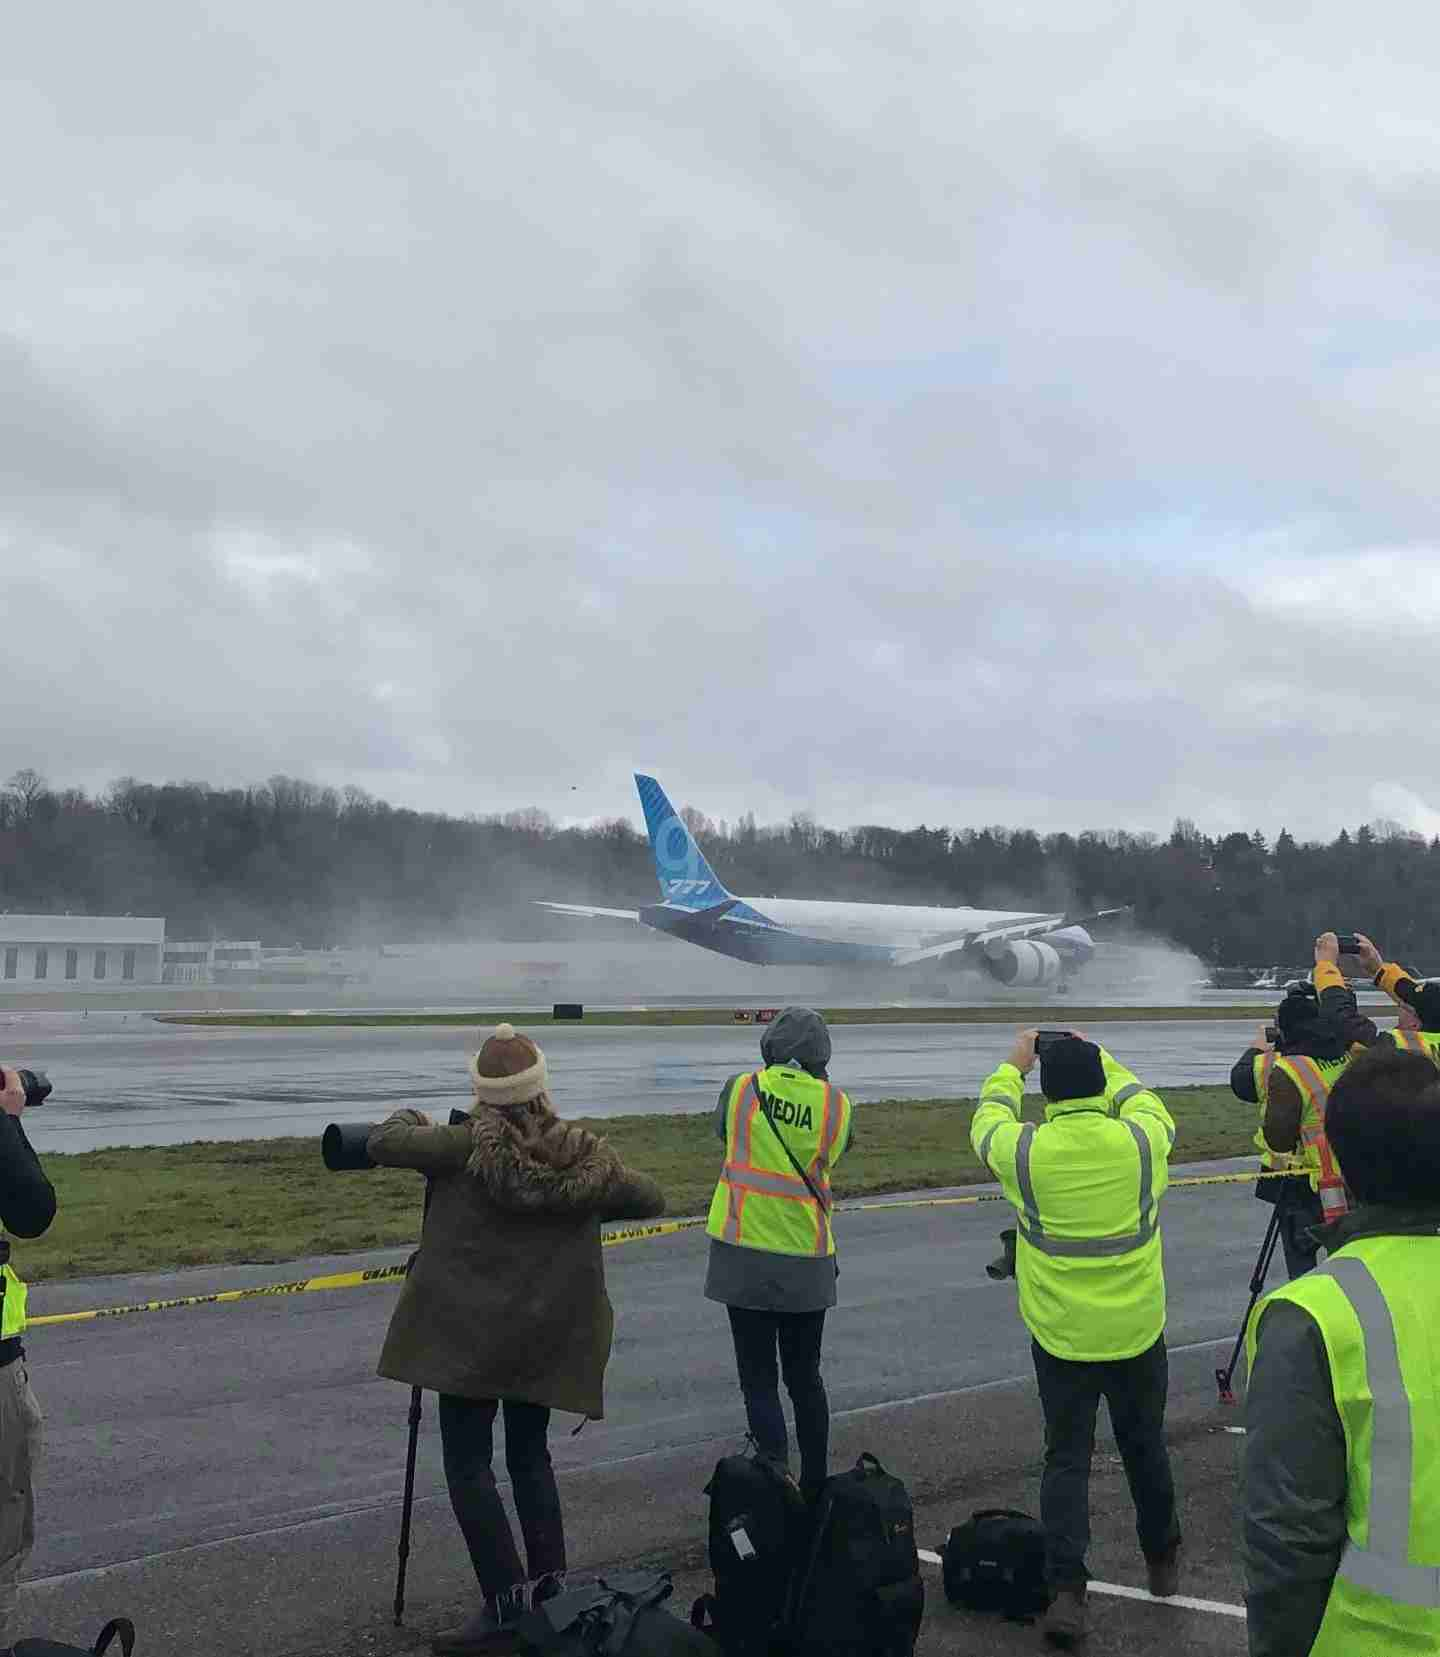 The 777X slowing down after landing. (Photo by Zach Wichter/The Points Guy.)